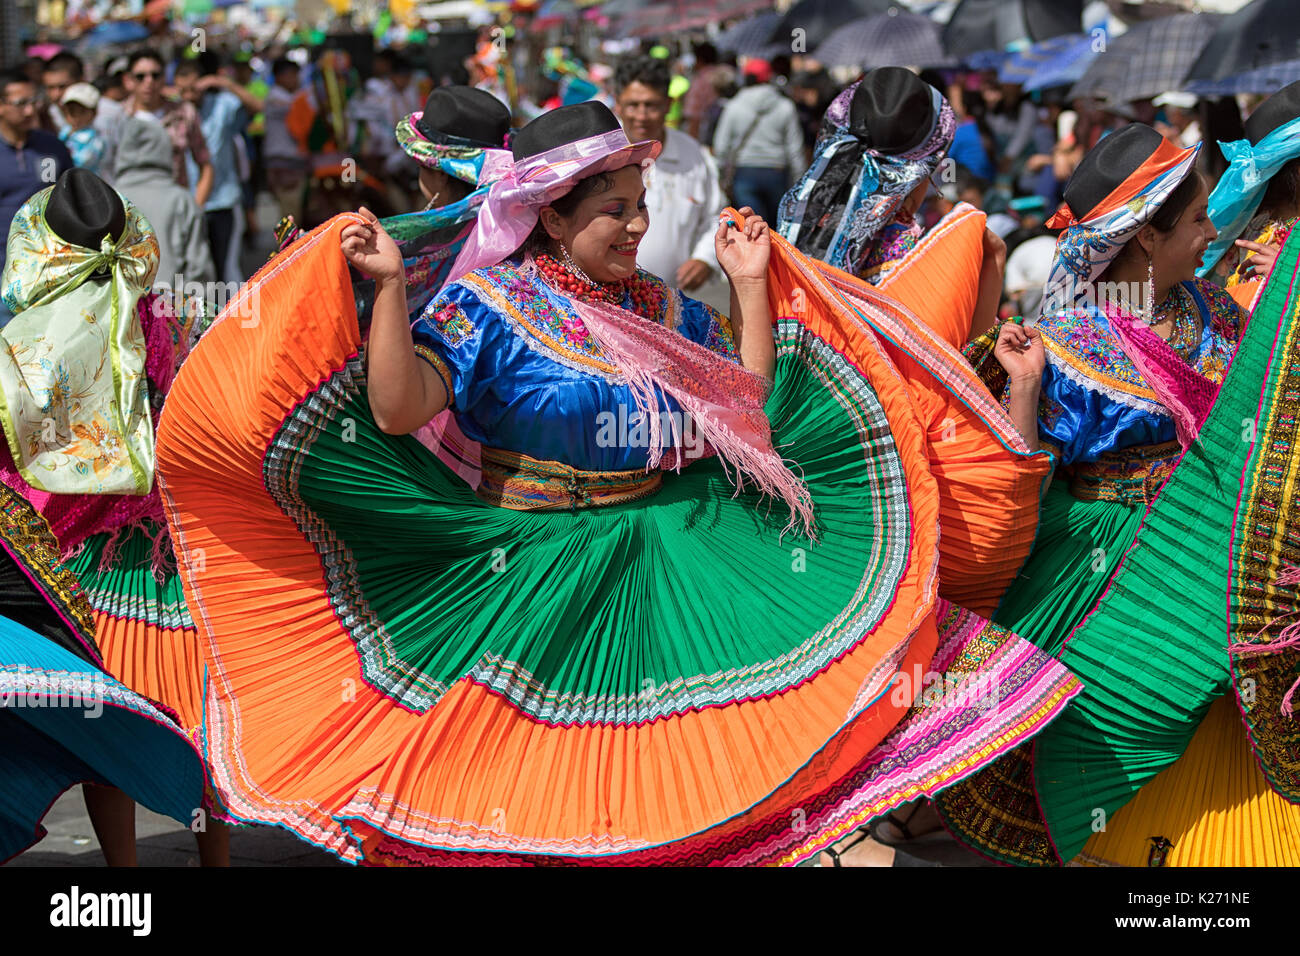 June 17, 2017 Pujili, Ecuador: female dancer in traditional clothing in motion at the Corpus Christi annual parade - Stock Image